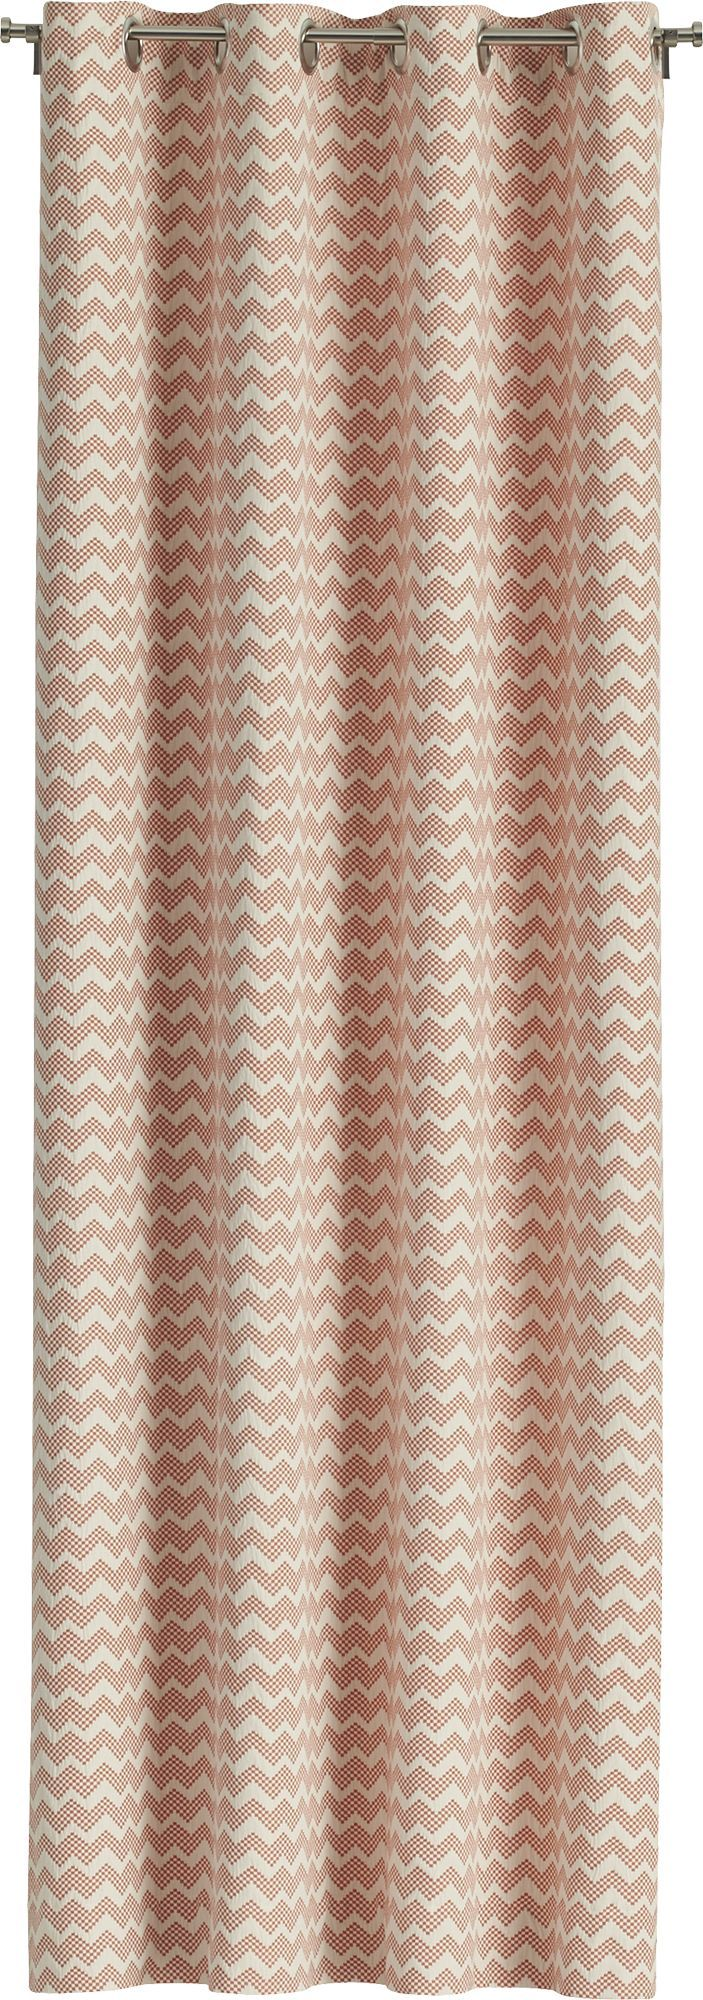 Reilly Orange Curtain Panels  | Crate and Barrel